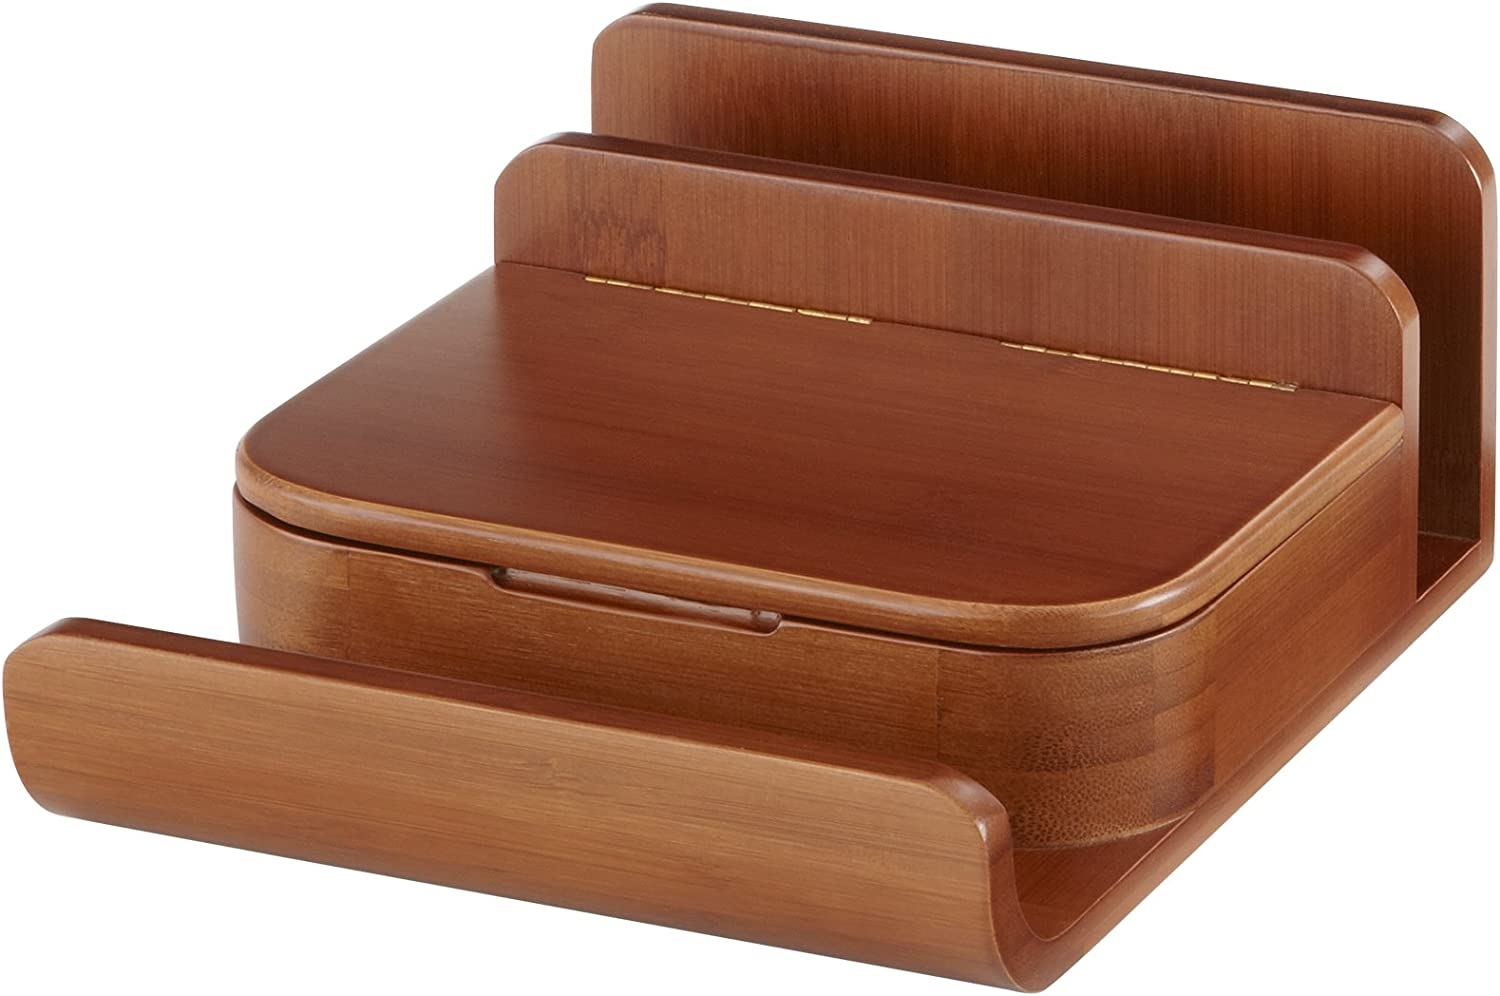 Safco Products Bamboo Small Organizer Cherry All items free shipping 3642CY Purchase Desktop